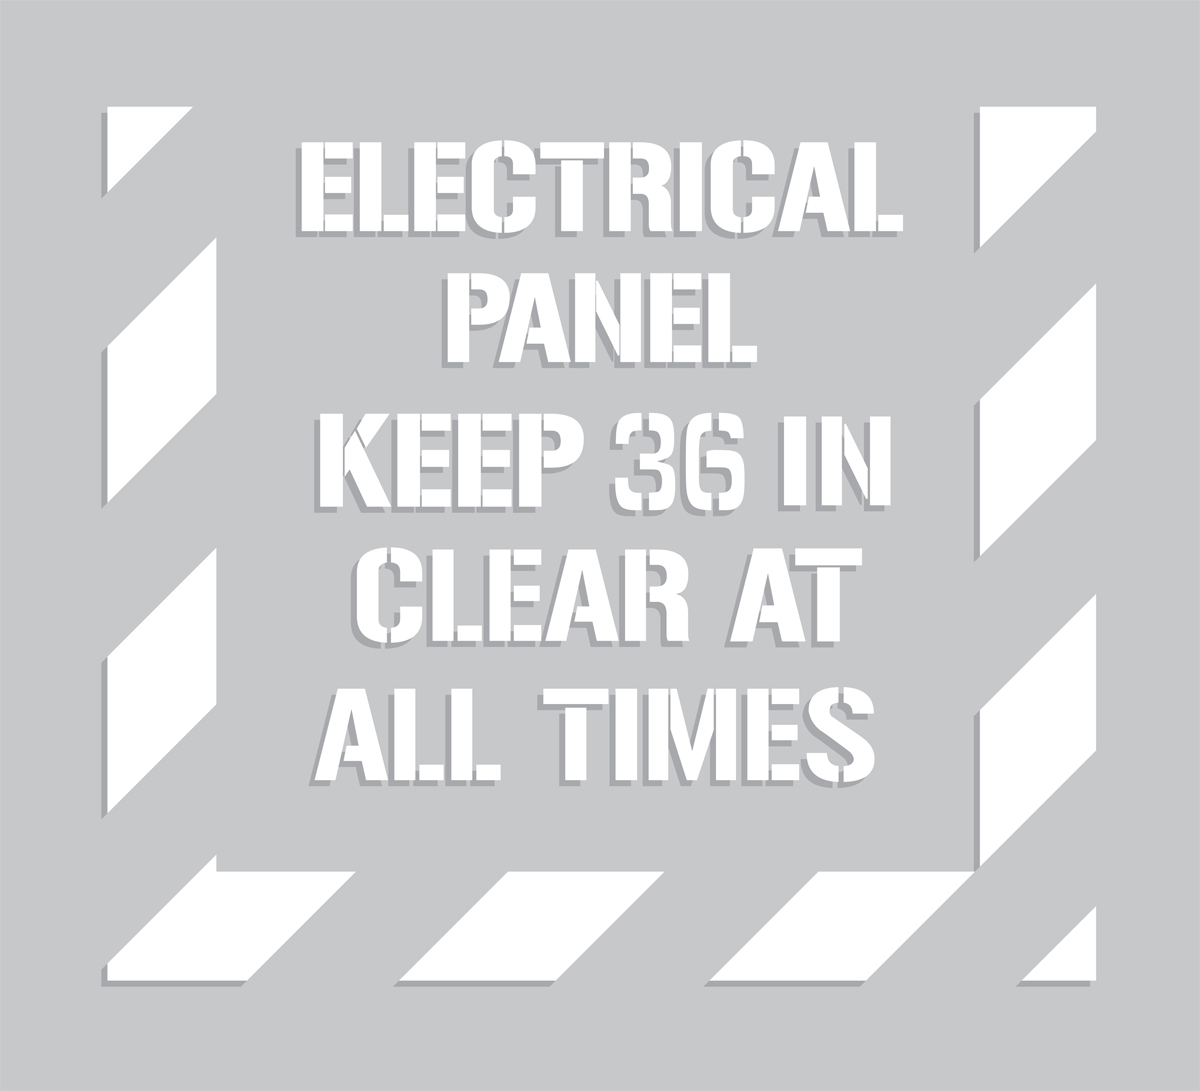 ELECTRICAL PANEL KEEP 36 IN CLEAR AT ALL TIMES